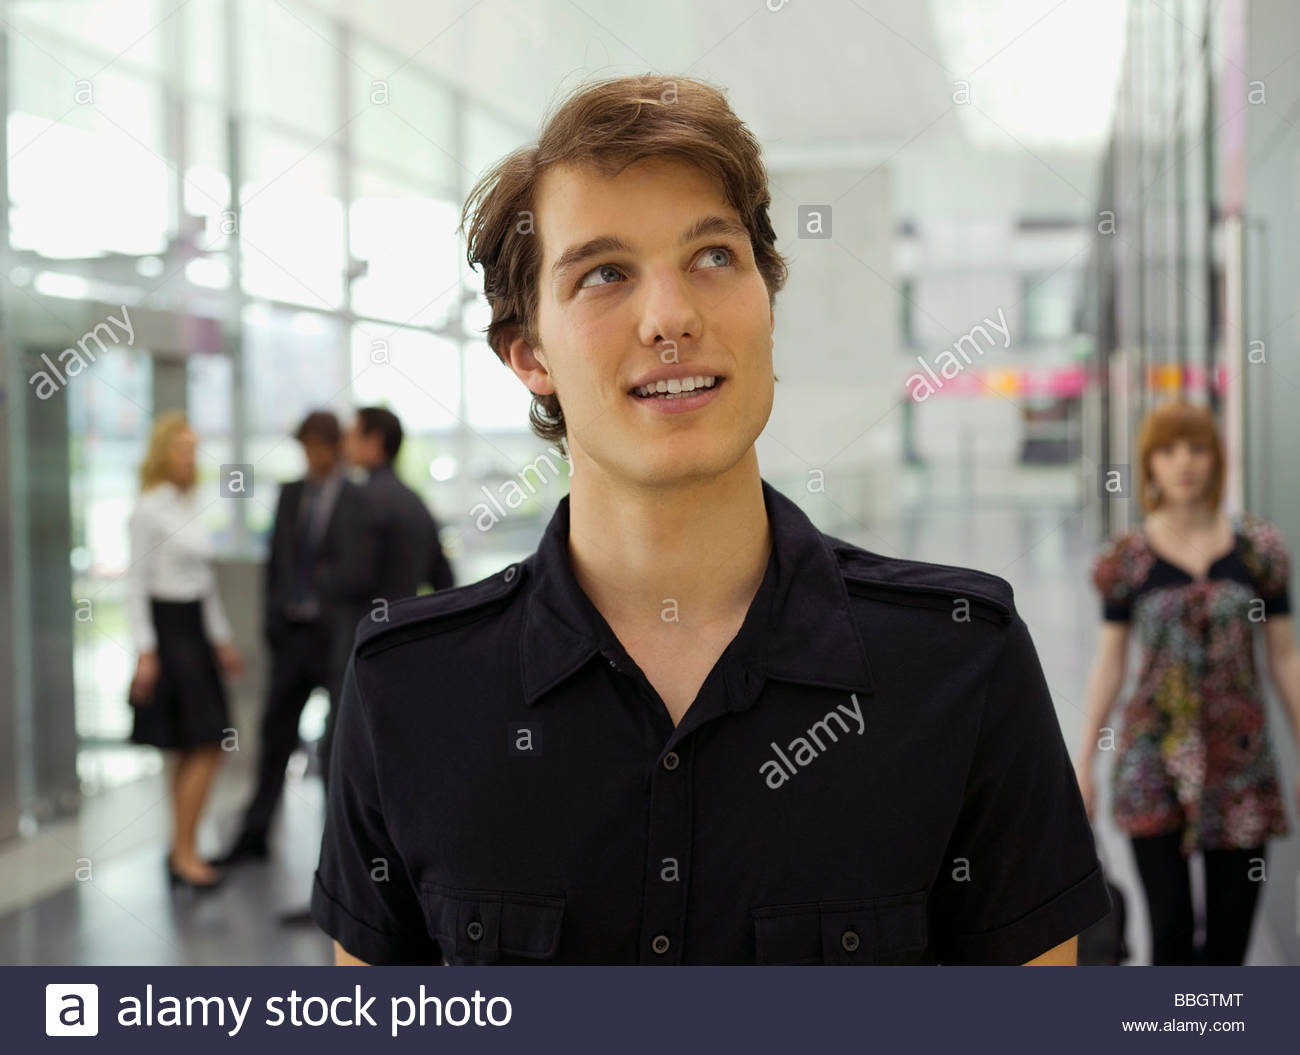 Classy businessman looking up Photo Stock